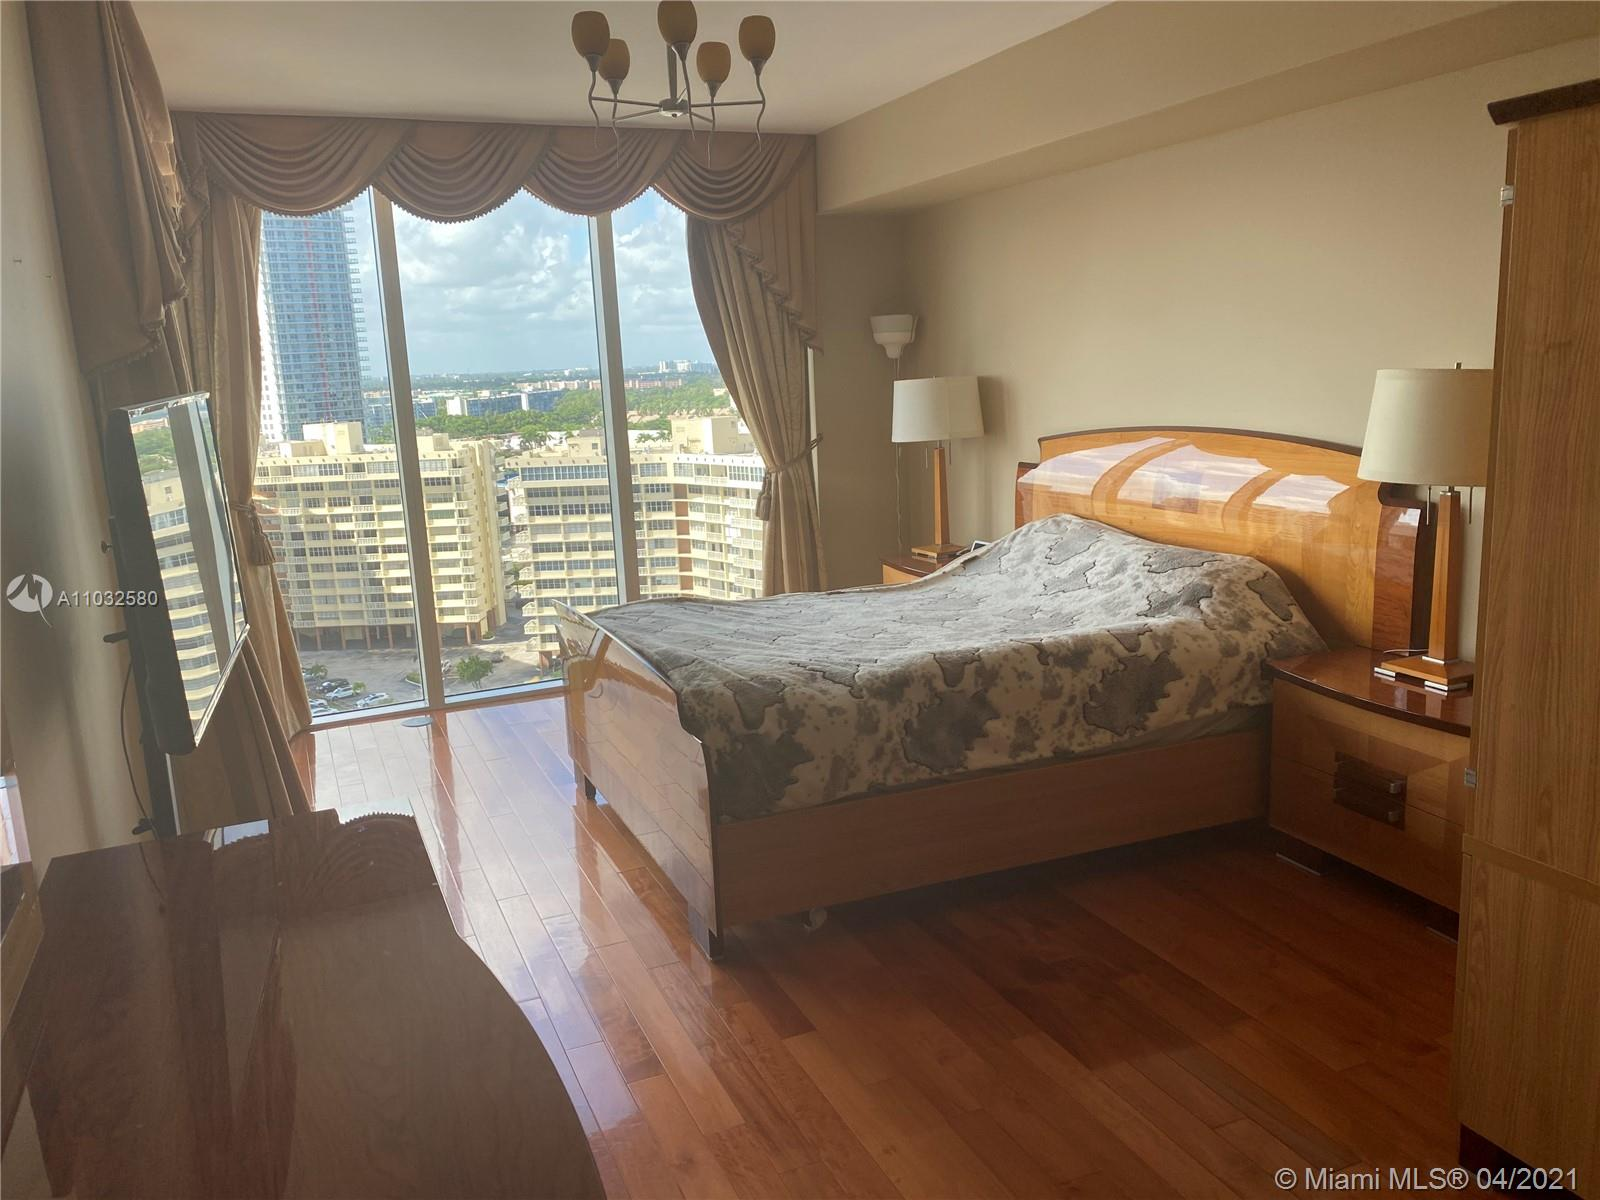 1607 3 / 3 1571 sq. ft. $ 2021-04-24 0 Photo